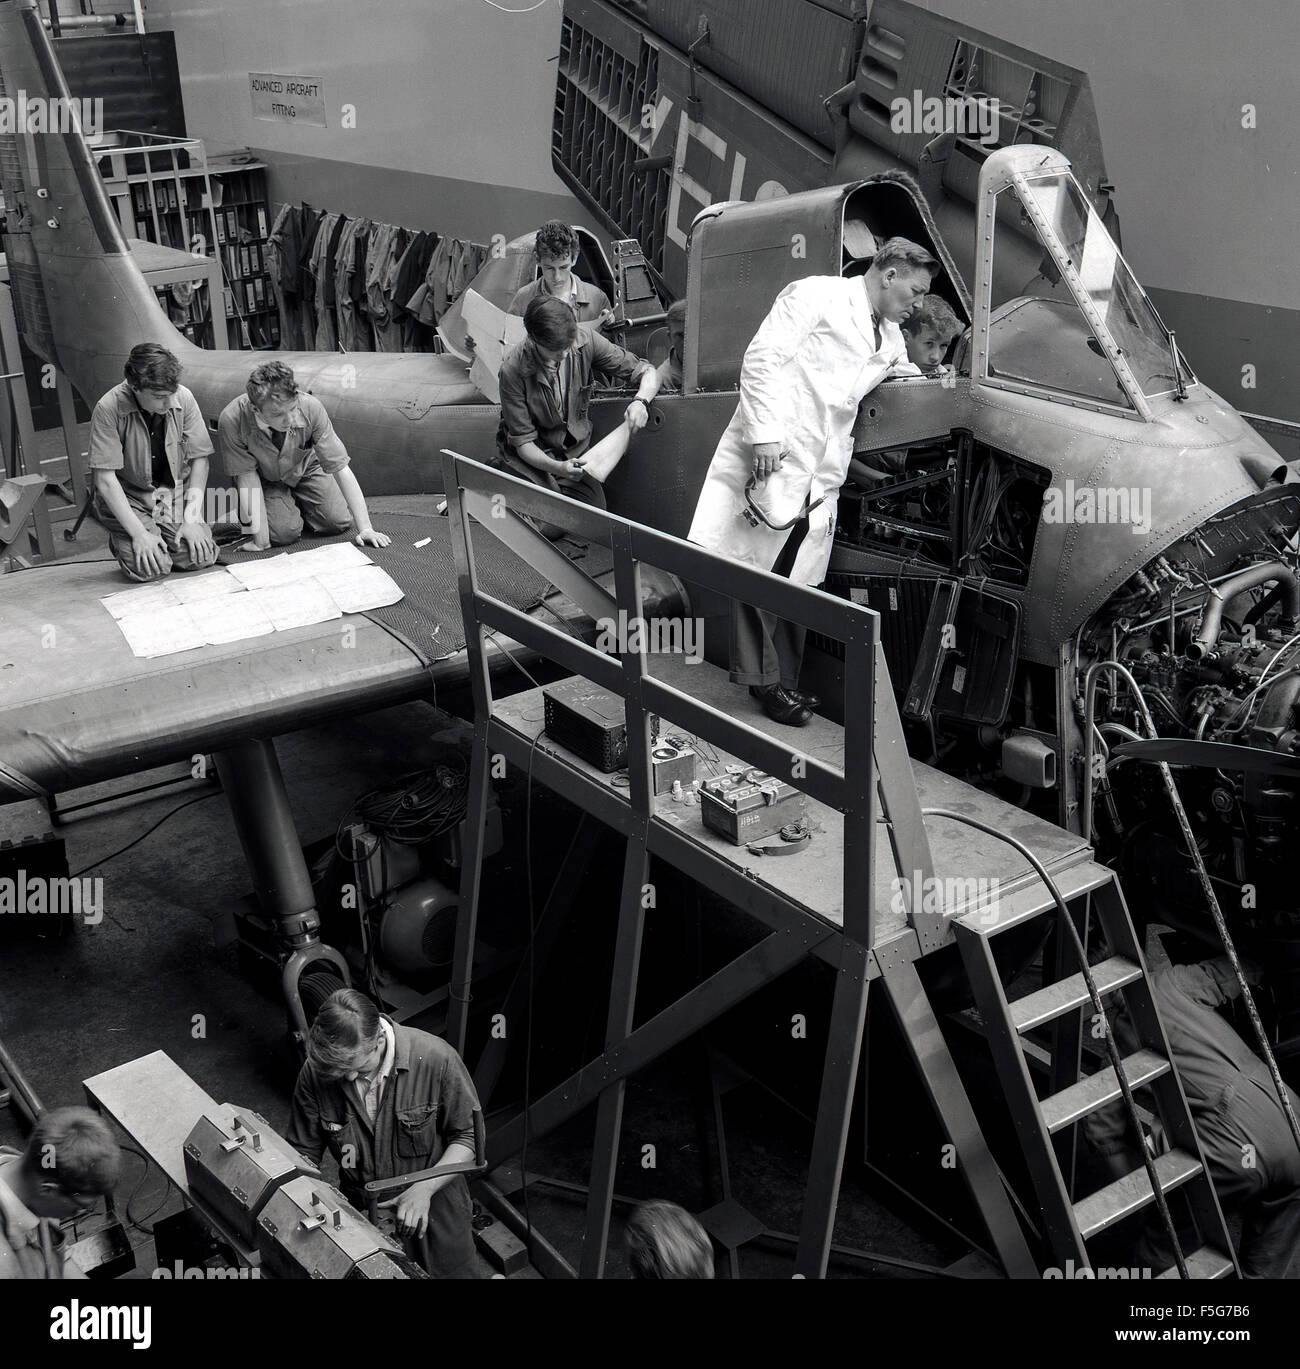 historical, 1950s, aircraft engineering or technical students working on an aircraft's engine under supervision, - Stock Image